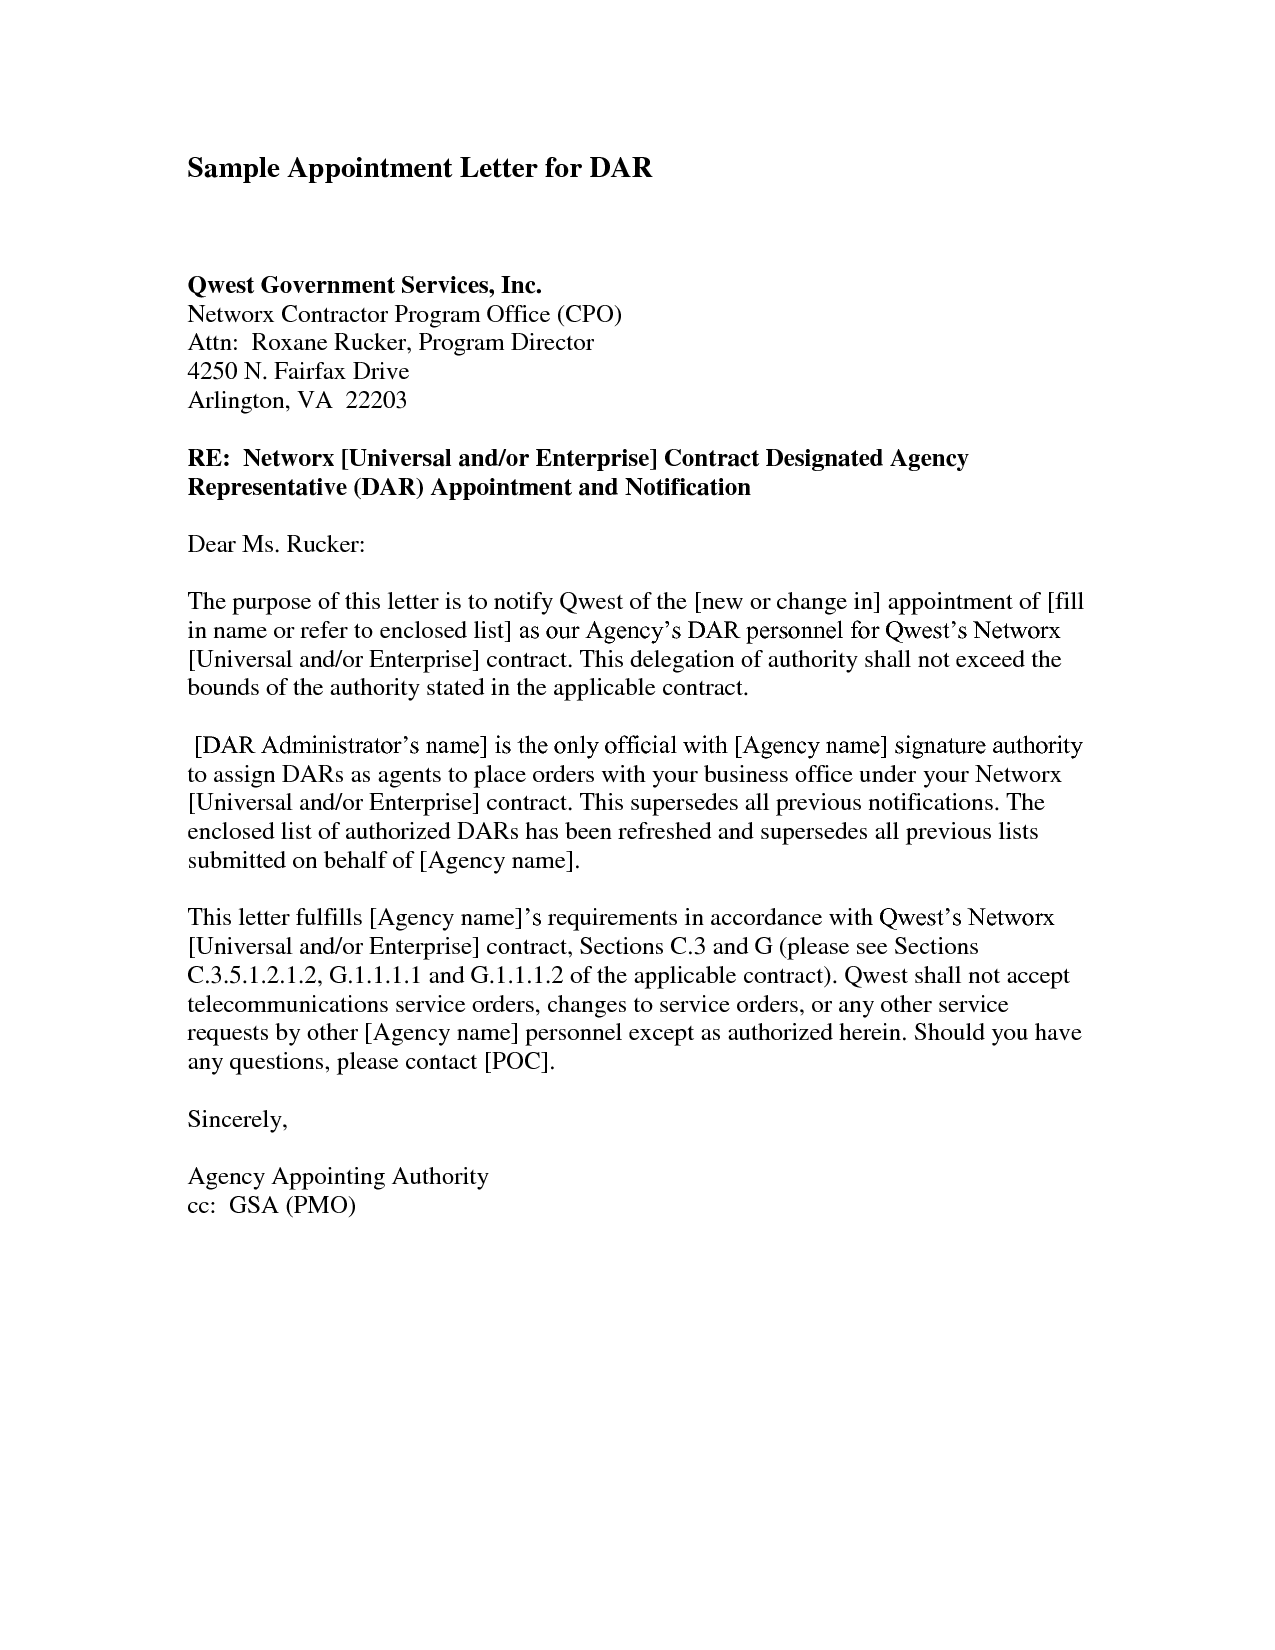 Trustee Appointment Letter Director Trustee Is Appointed Or